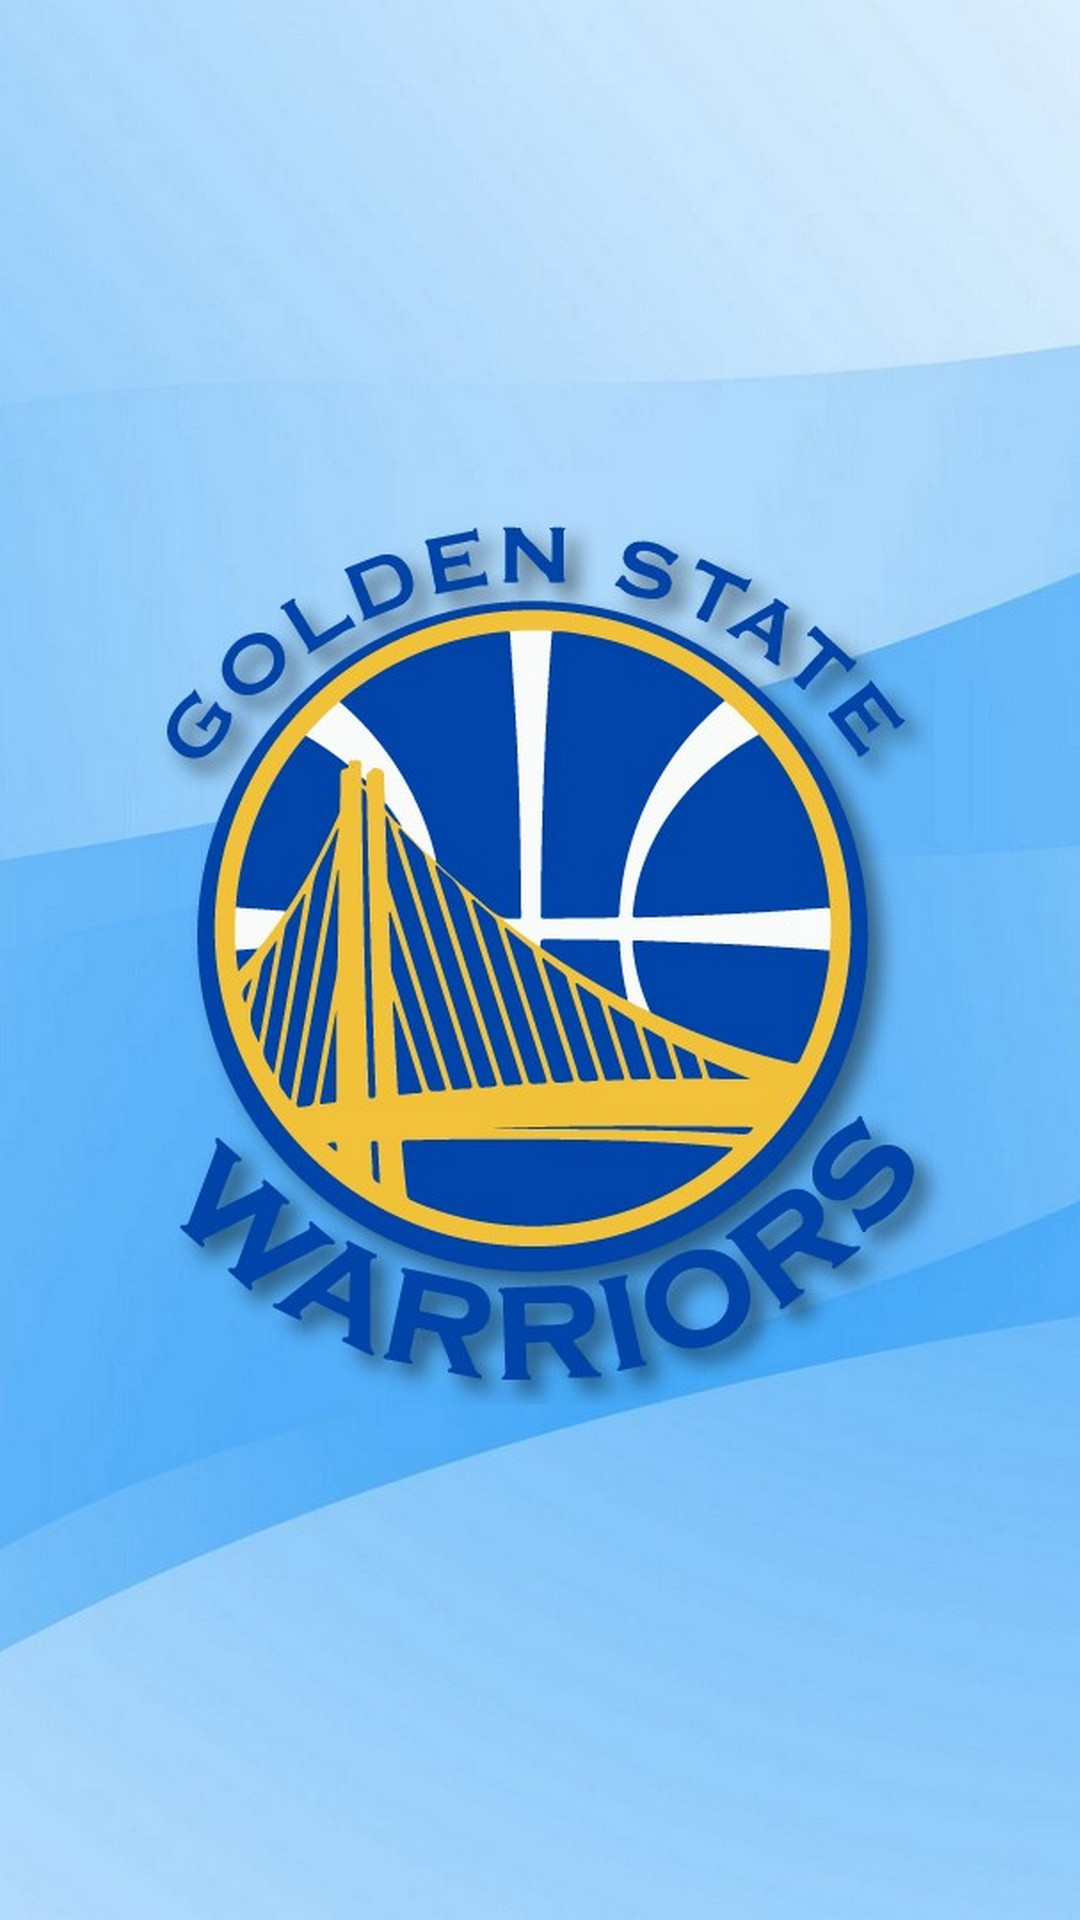 Golden State Warriors iPhone 7 Plus Wallpaper with image dimensions 1080x1920 pixel. You can make this wallpaper for your Desktop Computer Backgrounds, Windows or Mac Screensavers, iPhone Lock screen, Tablet or Android and another Mobile Phone device